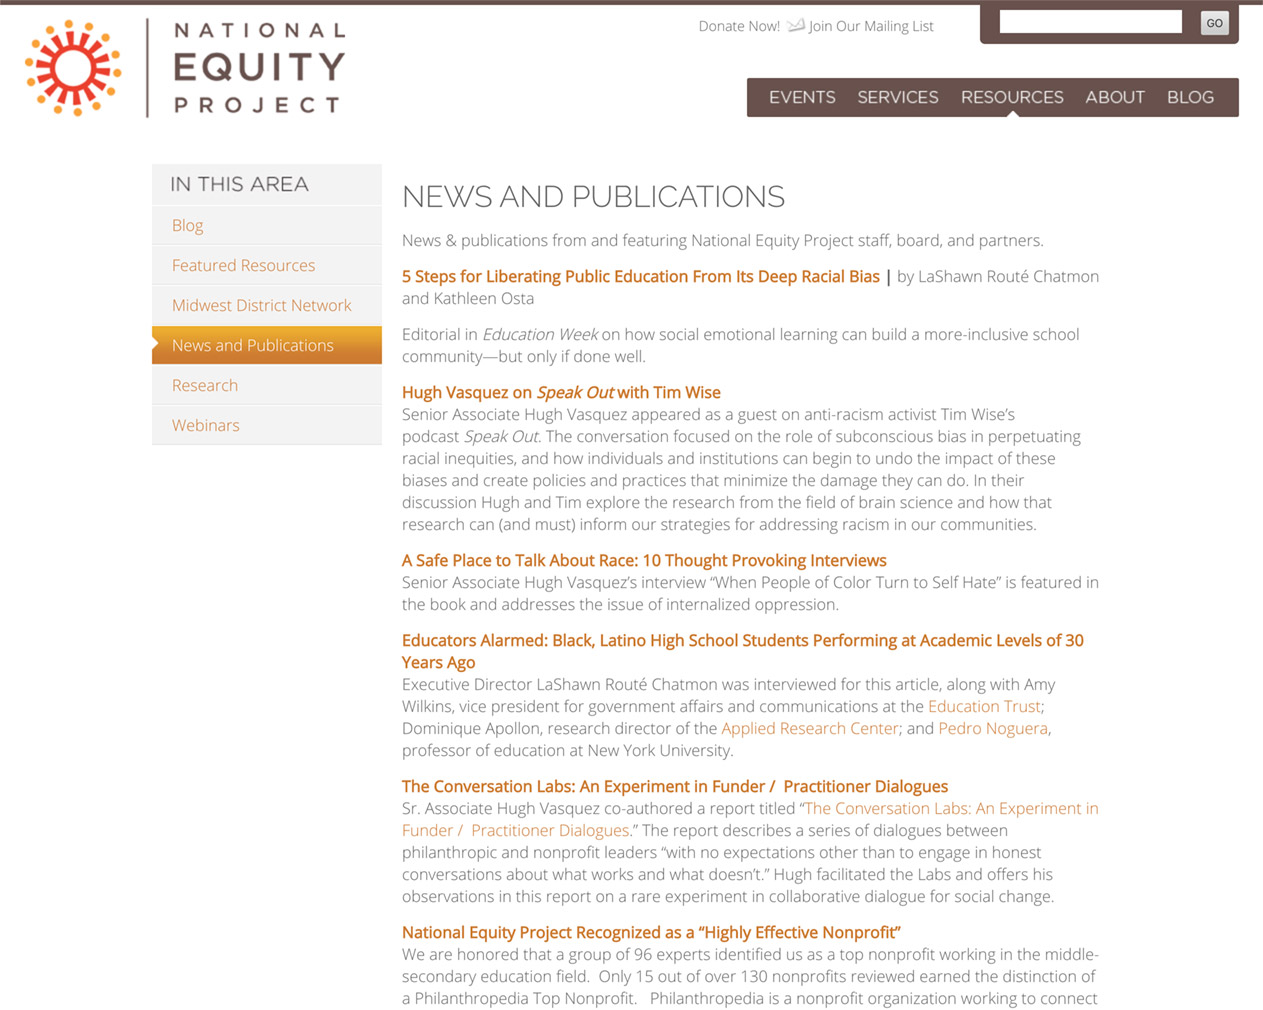 National Equity Project Resources